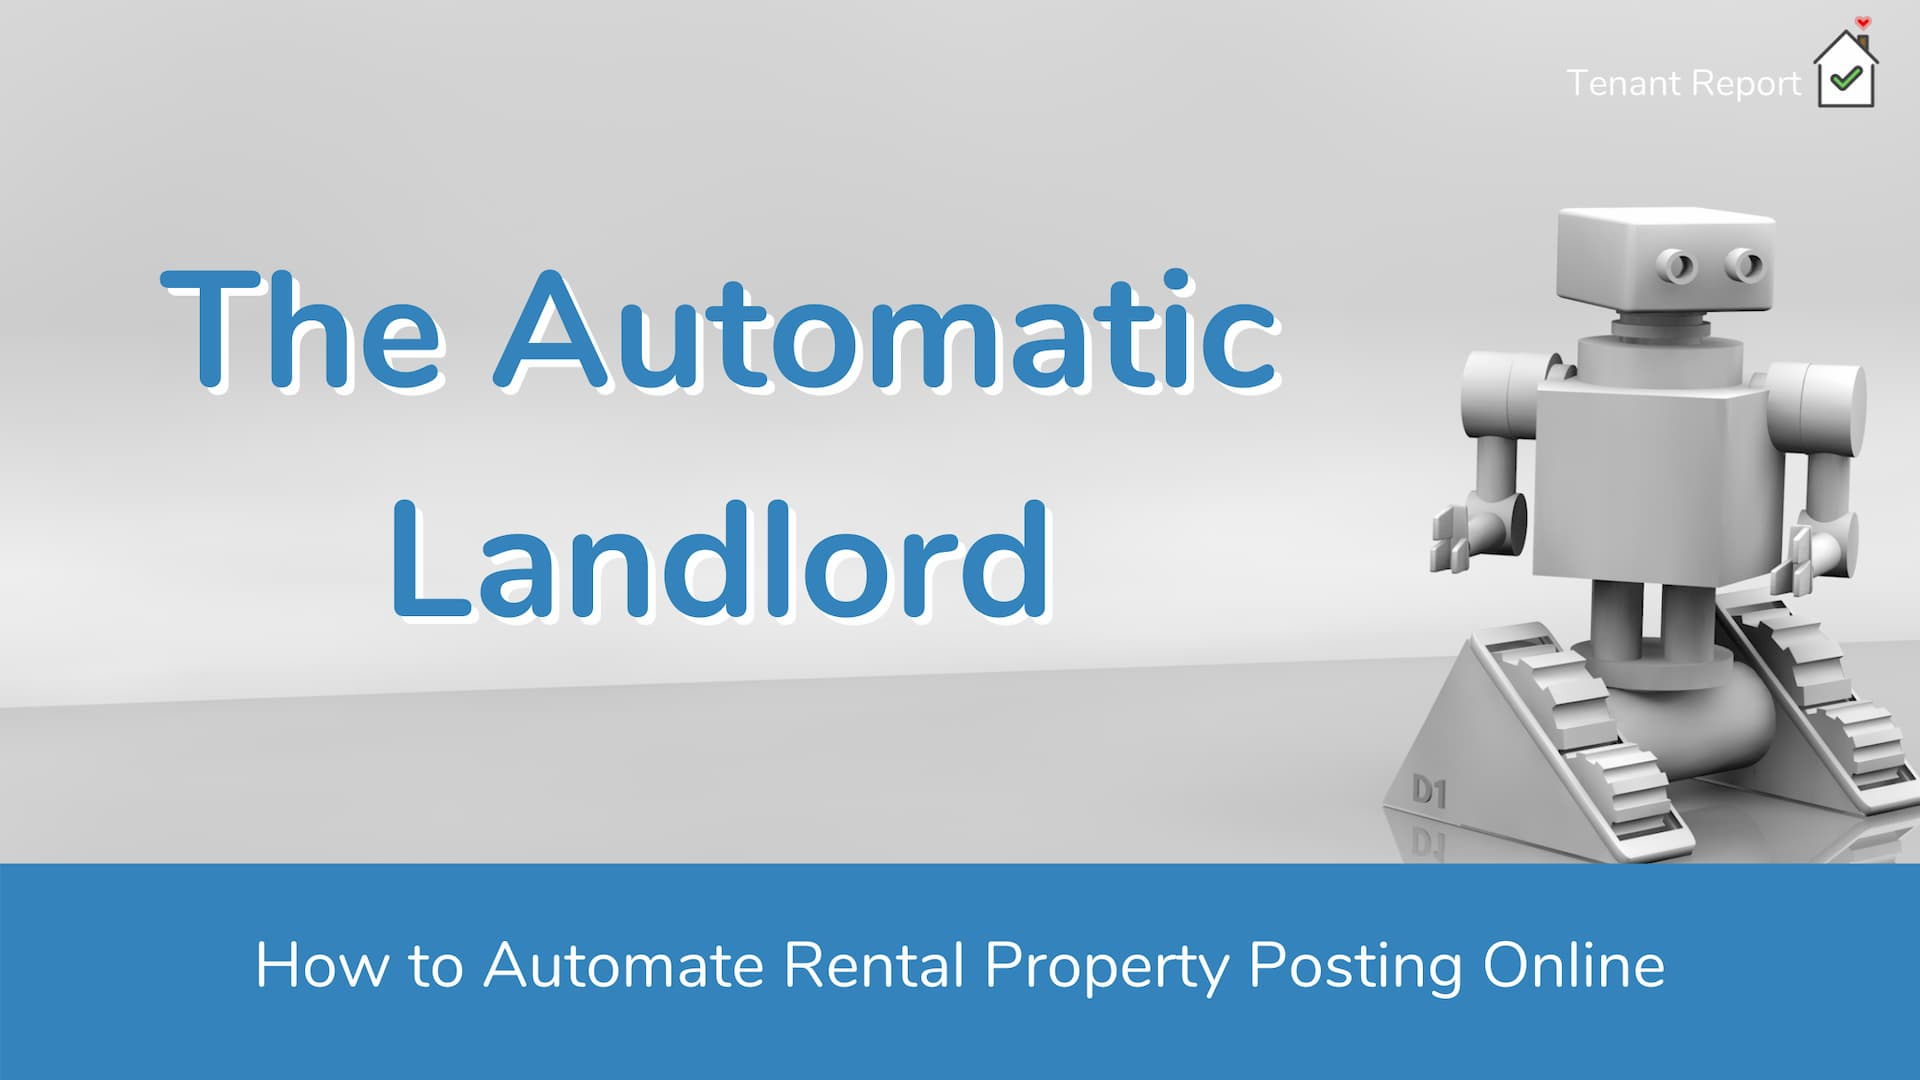 12-tenant-report-how-to-automate-rental-property-posting-online